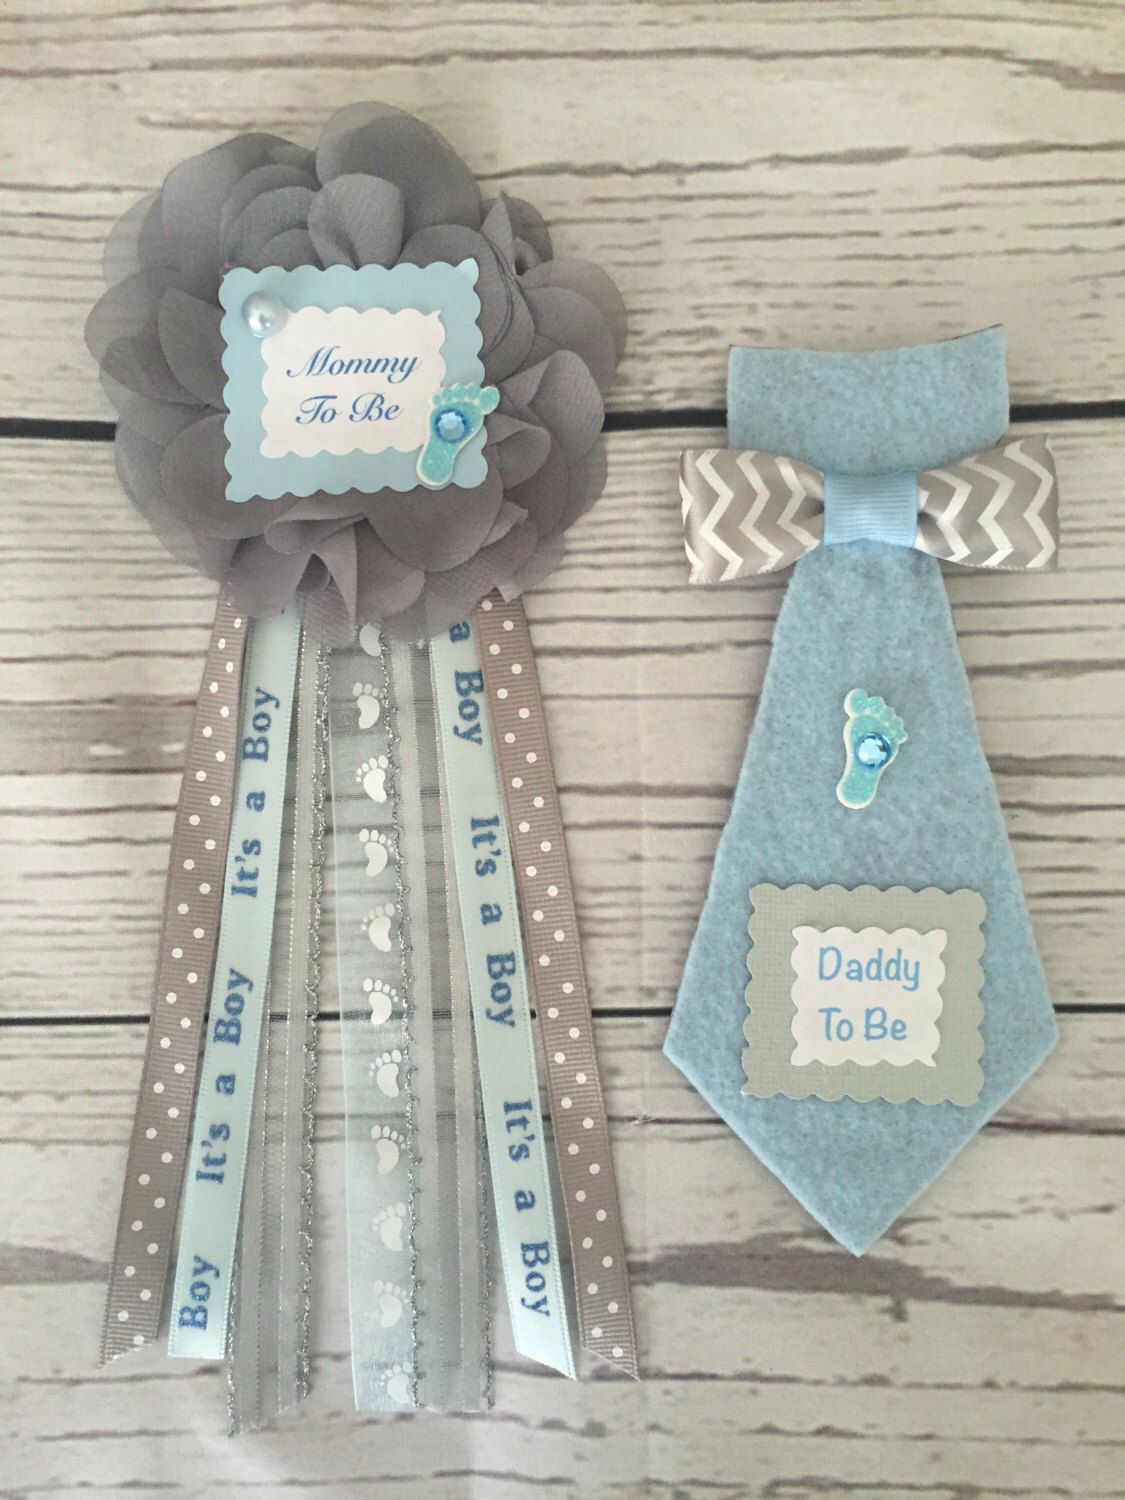 Pin by Mary Kate on My baby shower | Baby shower crosage ...